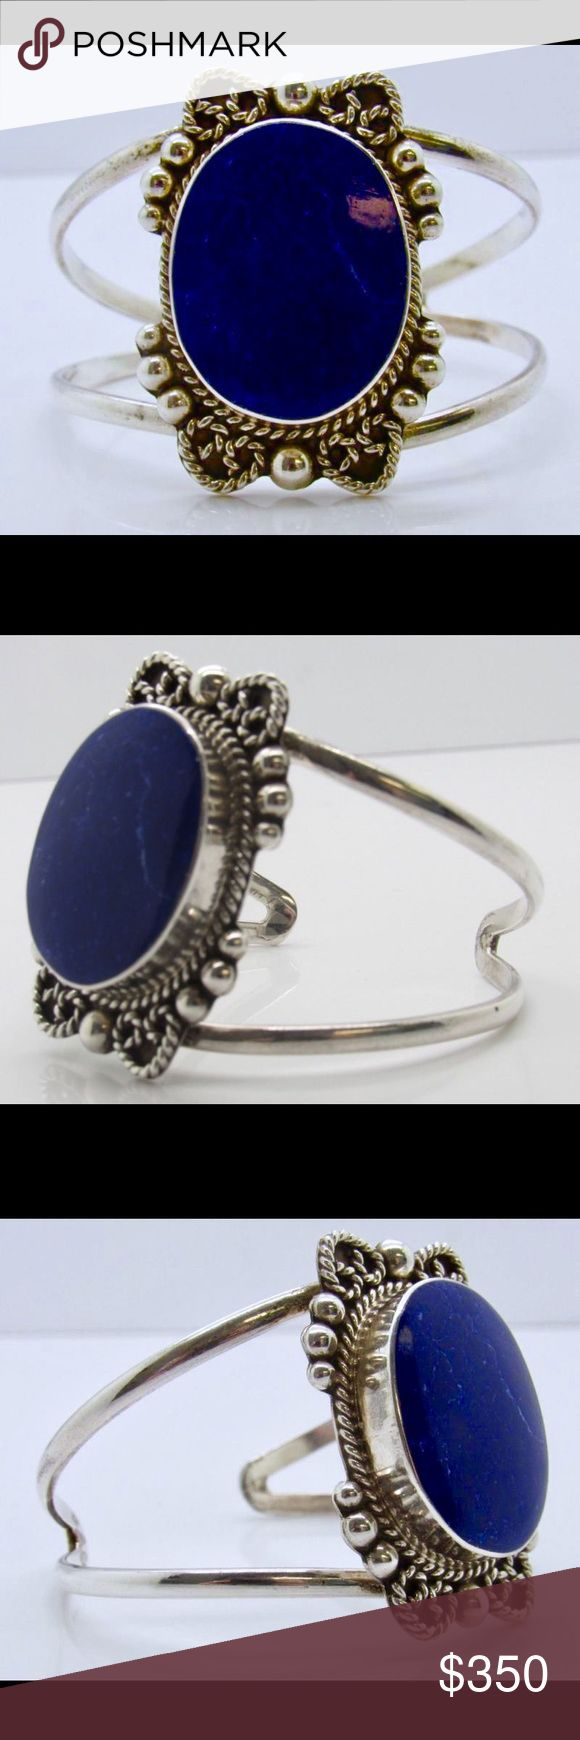 """💙Vintage Taxco Lapis Lazuli Sterling Silver Cuff 💙Vintage Taxco Lapis Lazuli Sterling Silver Cuff Bracelet💙 This cuff is a siren's call of immeasurable beauty. Circa the 1930's, it is stamped """"Mexico"""" and """".925"""", it is signed by the Taxco artisan with the hallmark, TO-15. It measures 5 3/8"""" on the inside end to end with an opening gap of 1 1/8"""" gap-1 3/4"""" max width. The fabulous Lapis stone that is the heart of the this masterpiece measures 30 mm x 23 mm. The weight of the cuff is 41.7 g…"""